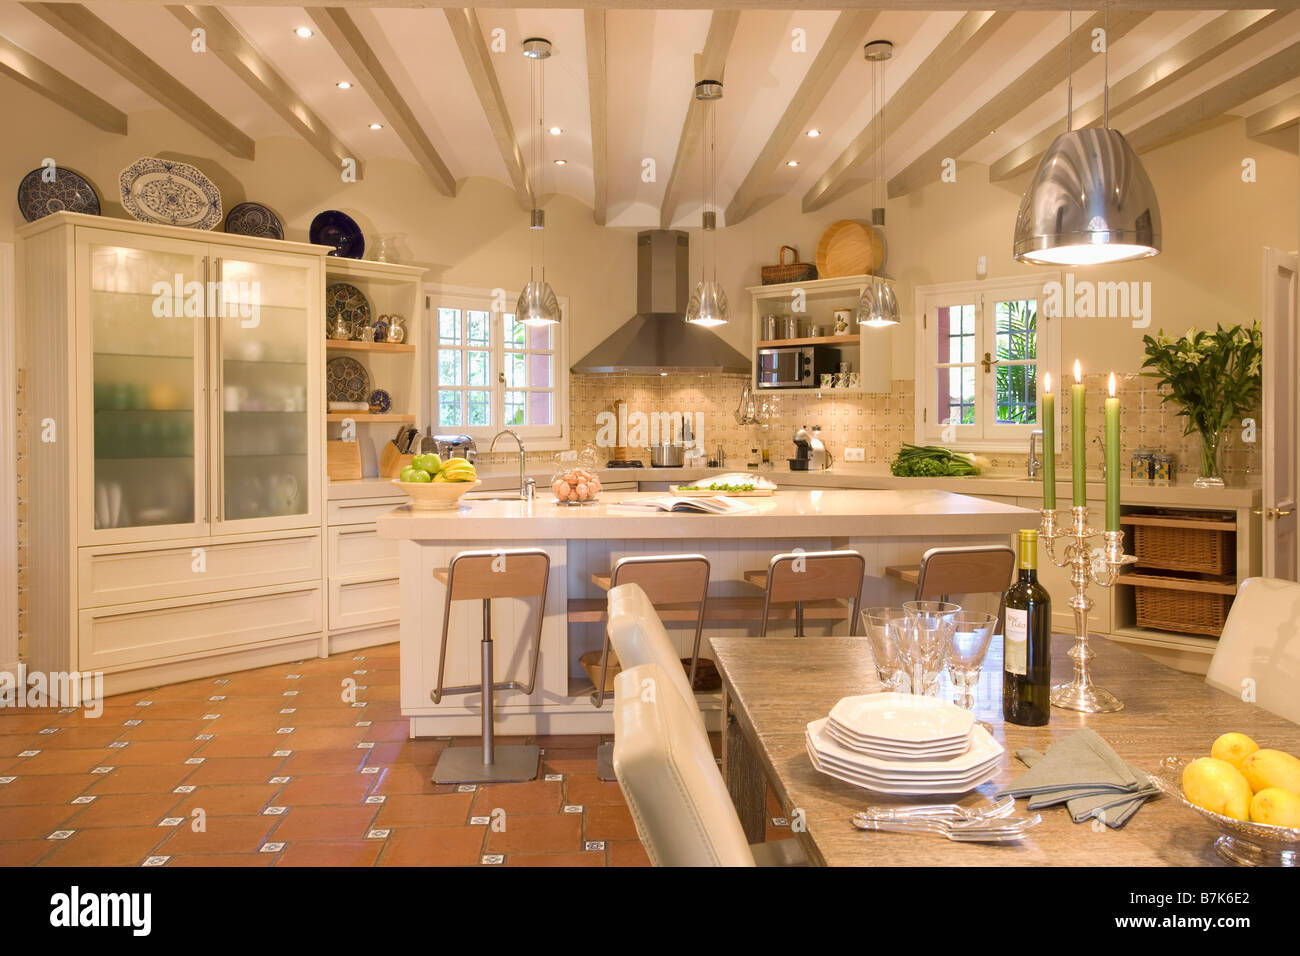 Large openplan kitchen dining room with glass fronted cupboard breakfast  bar and pendant light above dining tableLarge openplan kitchen dining room with glass fronted cupboard  . Pictures Of Open Plan Kitchen And Dining Room. Home Design Ideas